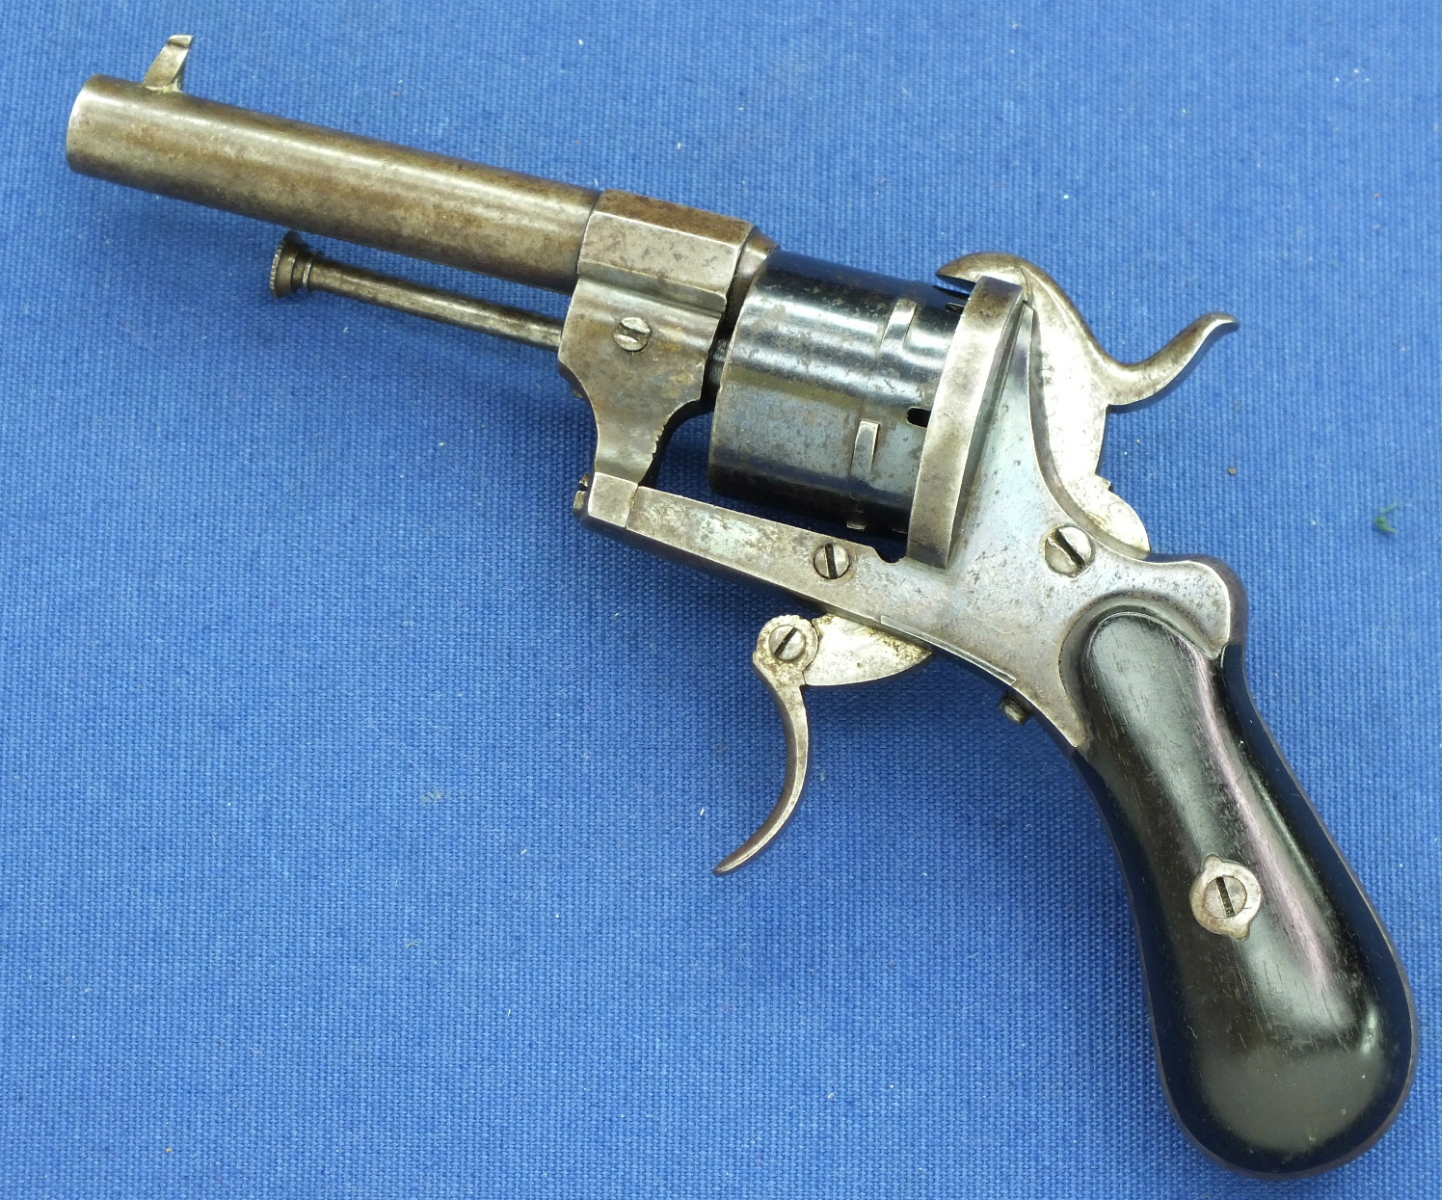 A very nice antique Liege Pinfire Revolver, caliber 7 mm, length 19